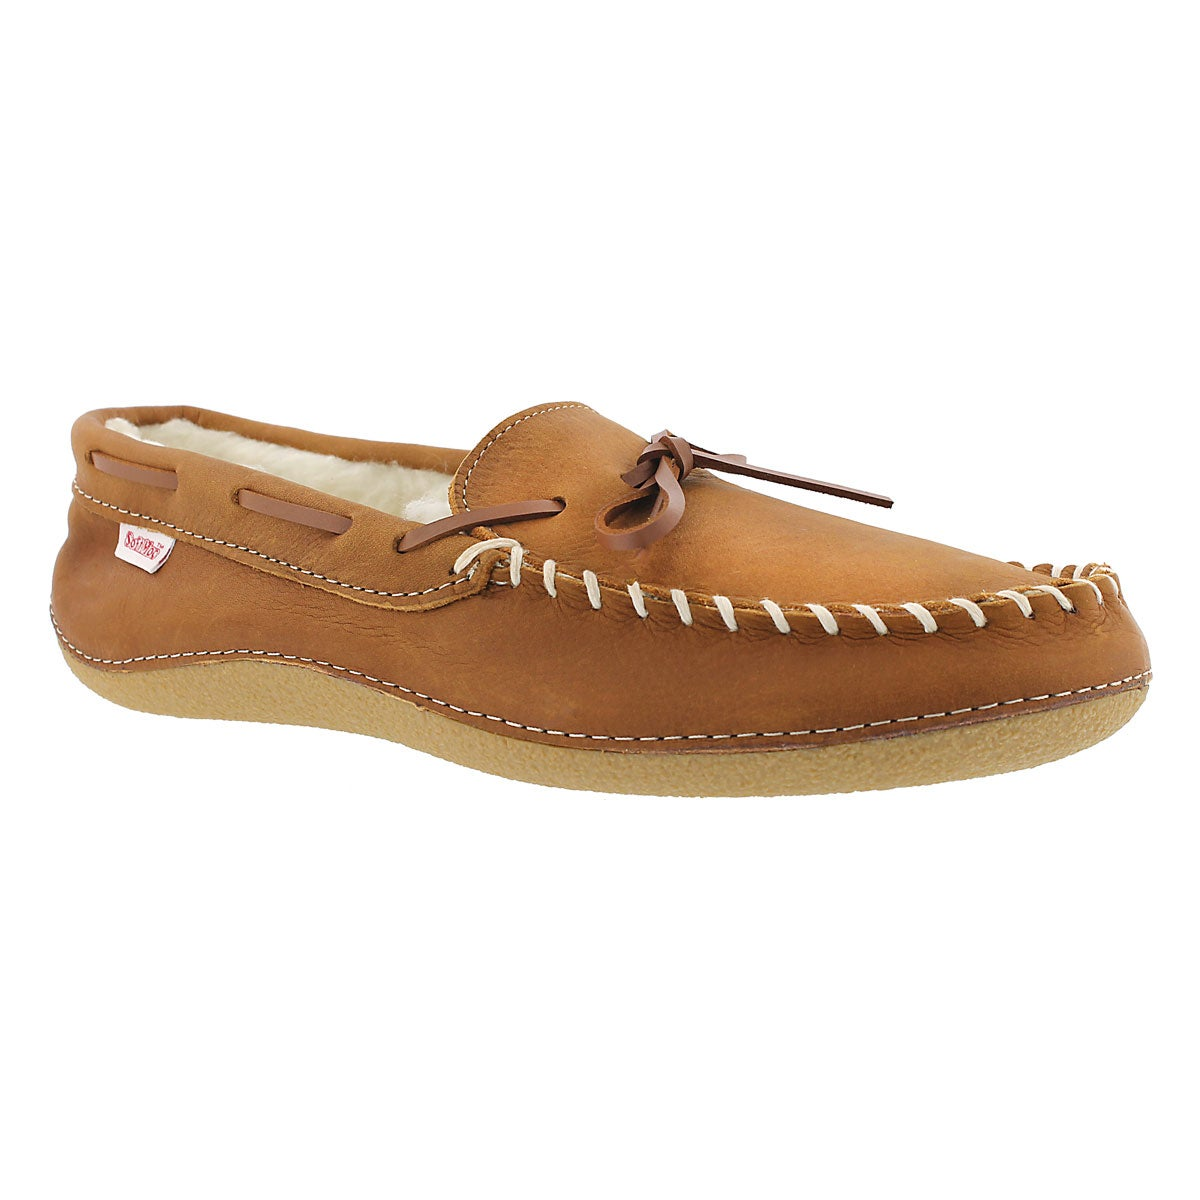 Men's GARY bark fleece lined leather moccasins